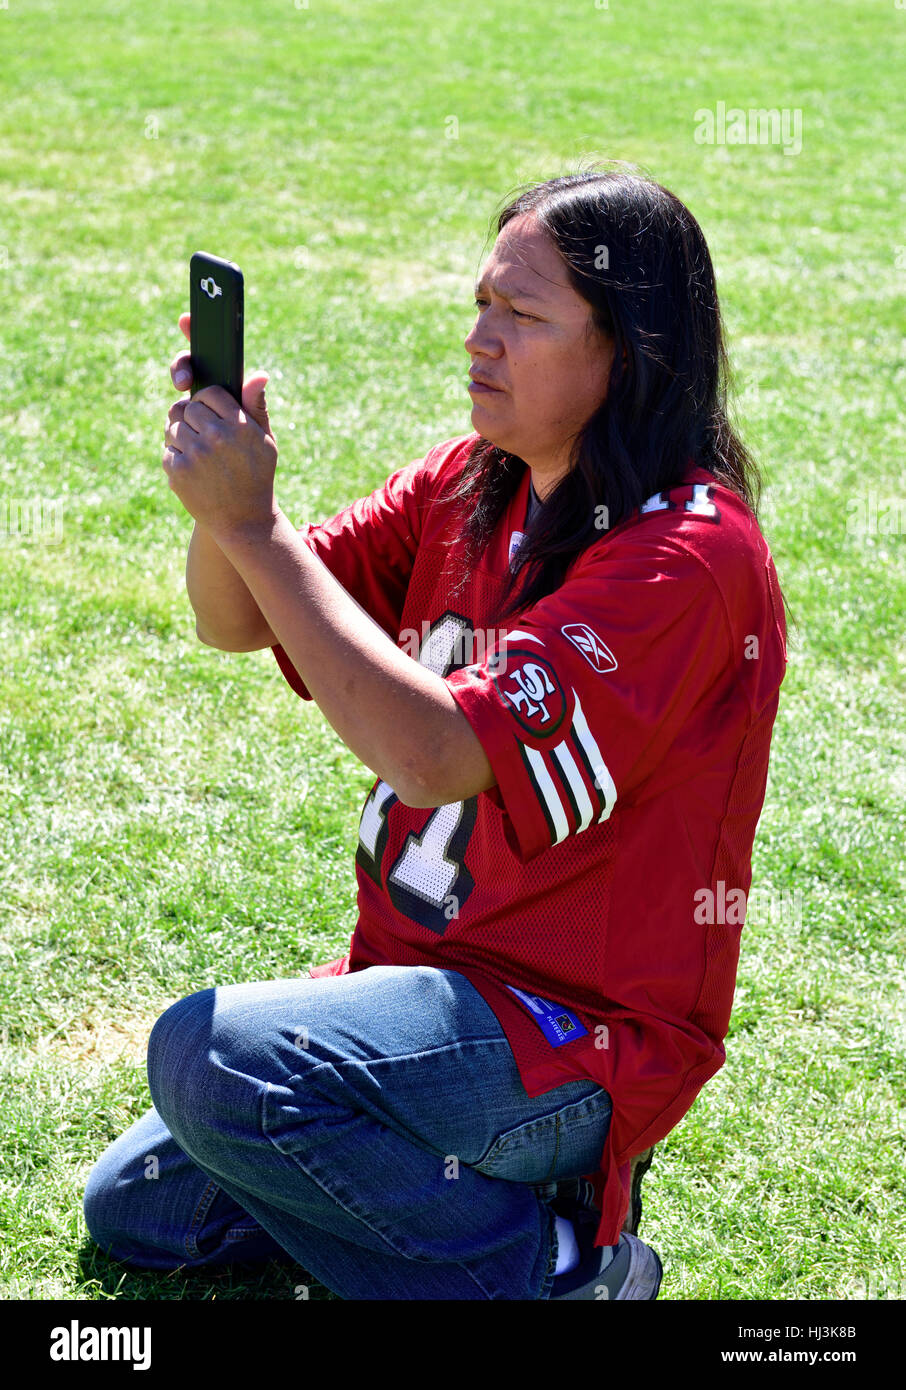 Navaho Native American Indian man at Prescott Inter-tribal Pow Wow Arizona taking photo with cell phone - Stock Image